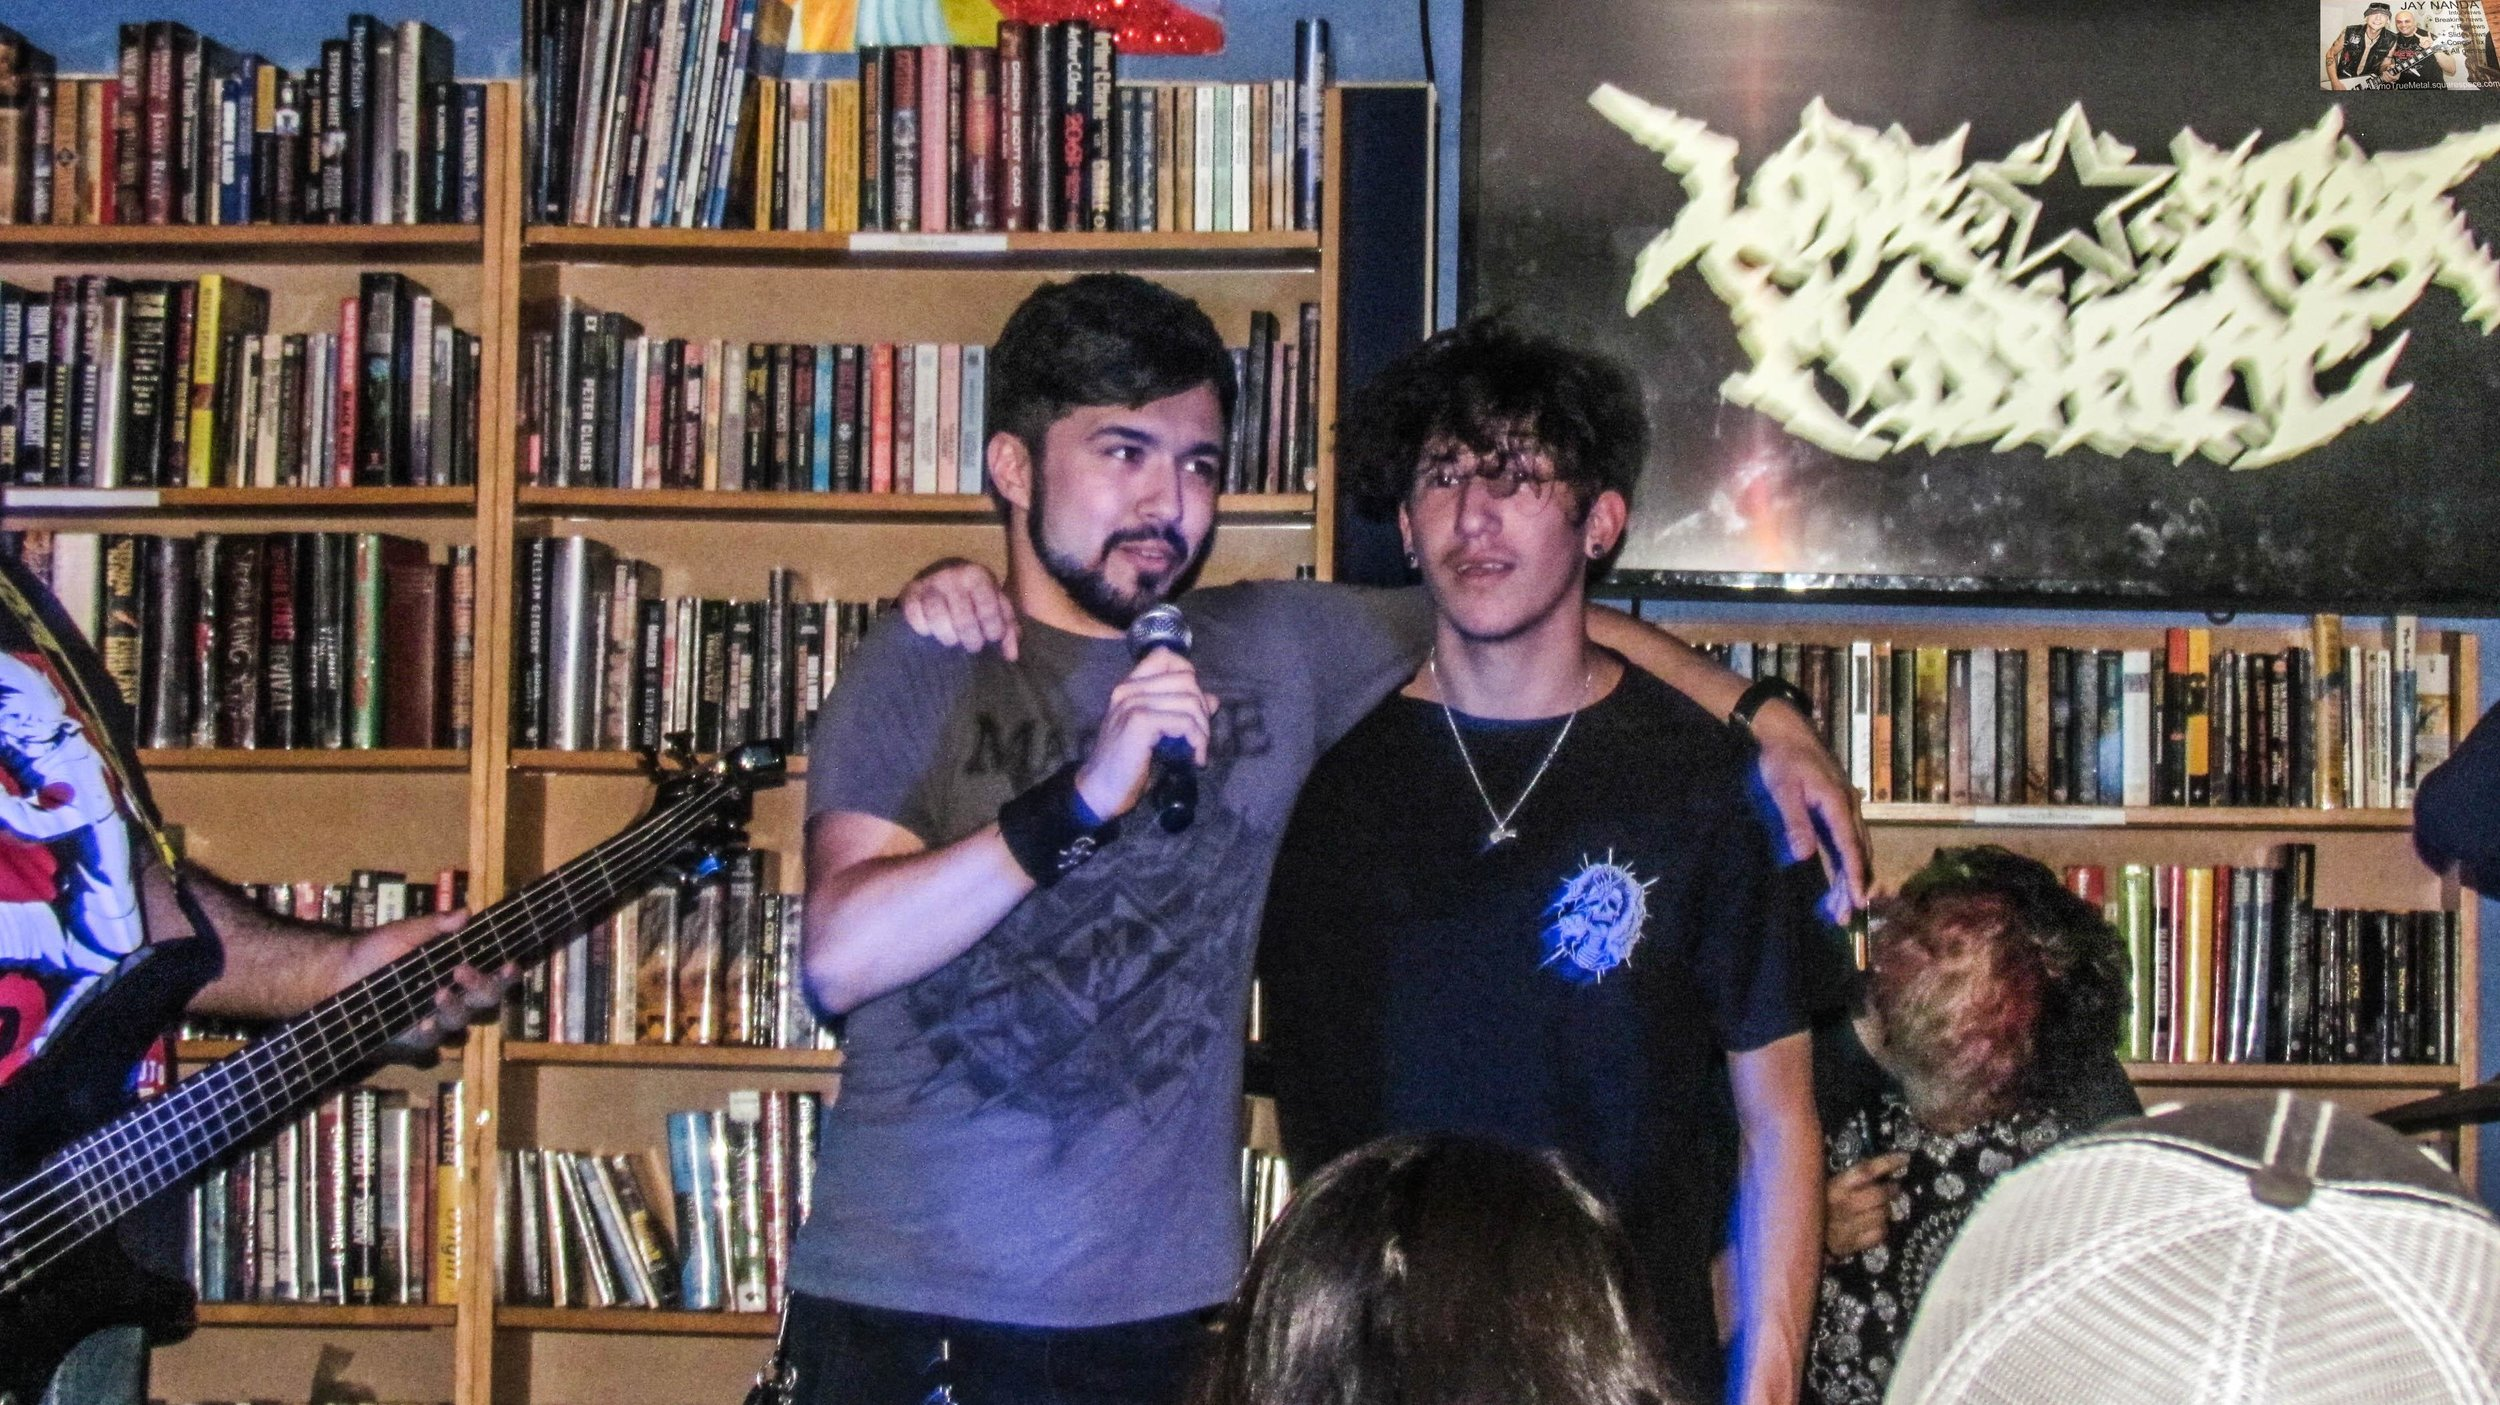 Send Help bassist/vocalist Camron Maldonado (left) tells the patrons of how Lonestar Massacre vocalist Hondo Hernandez (right) inadvertently broke the neck of his Les Paul guitar as the two bands were on tour together . . .